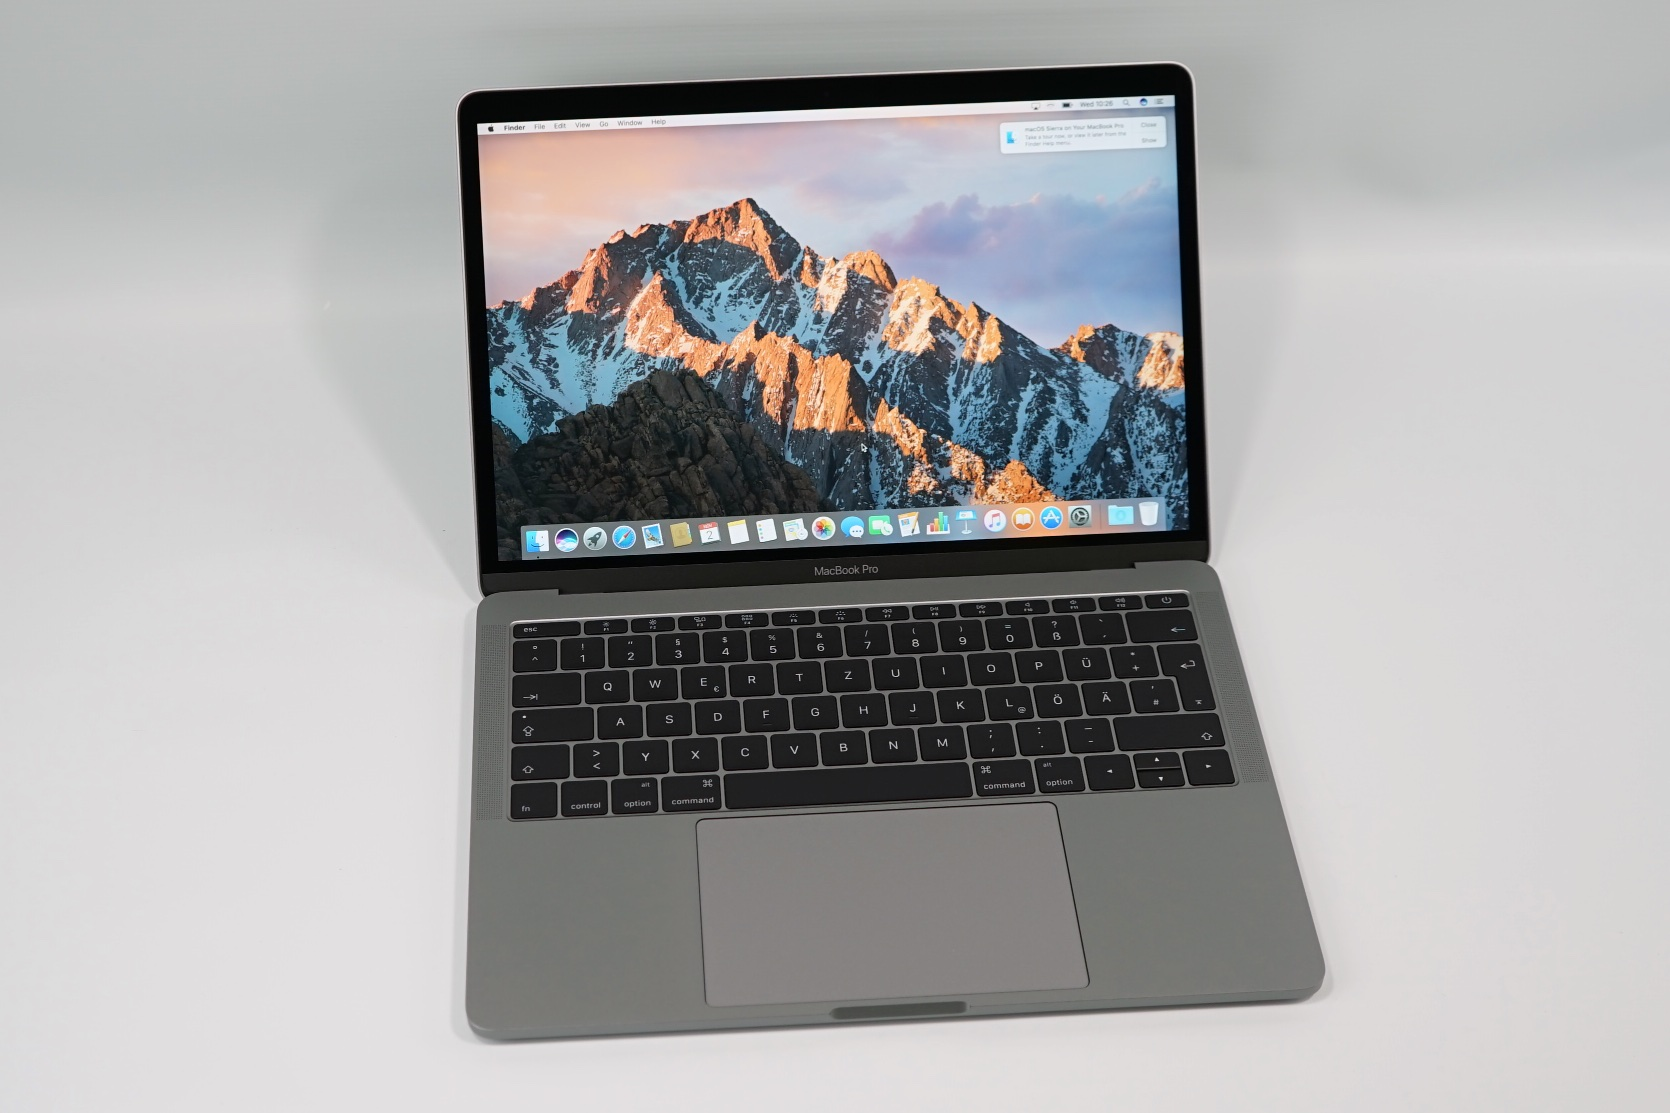 macbook pro 13 test